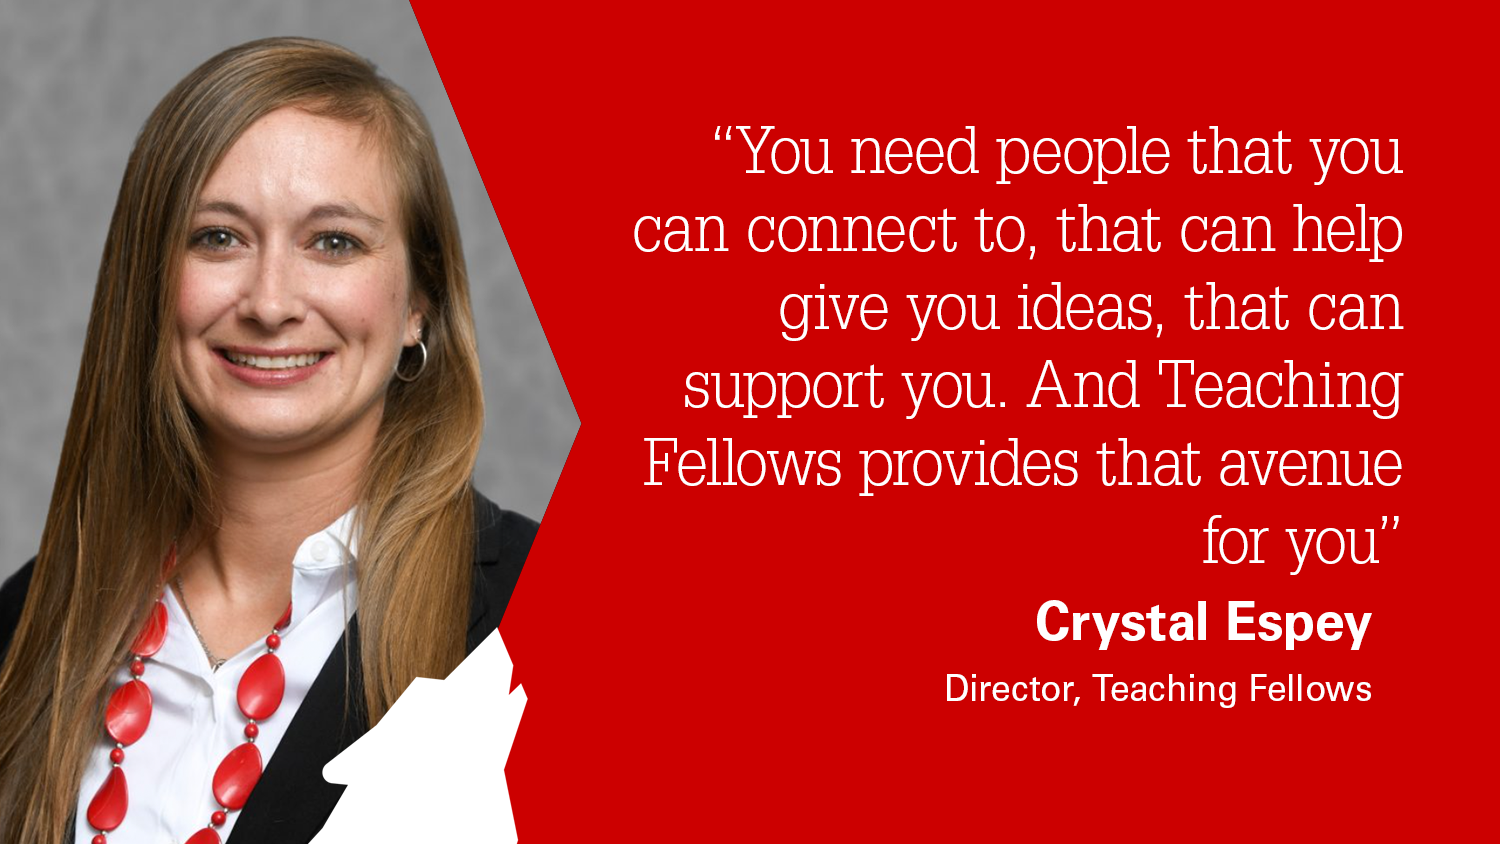 Crystal Espey discusses the Teaching Fellows program at the NC State College of Education